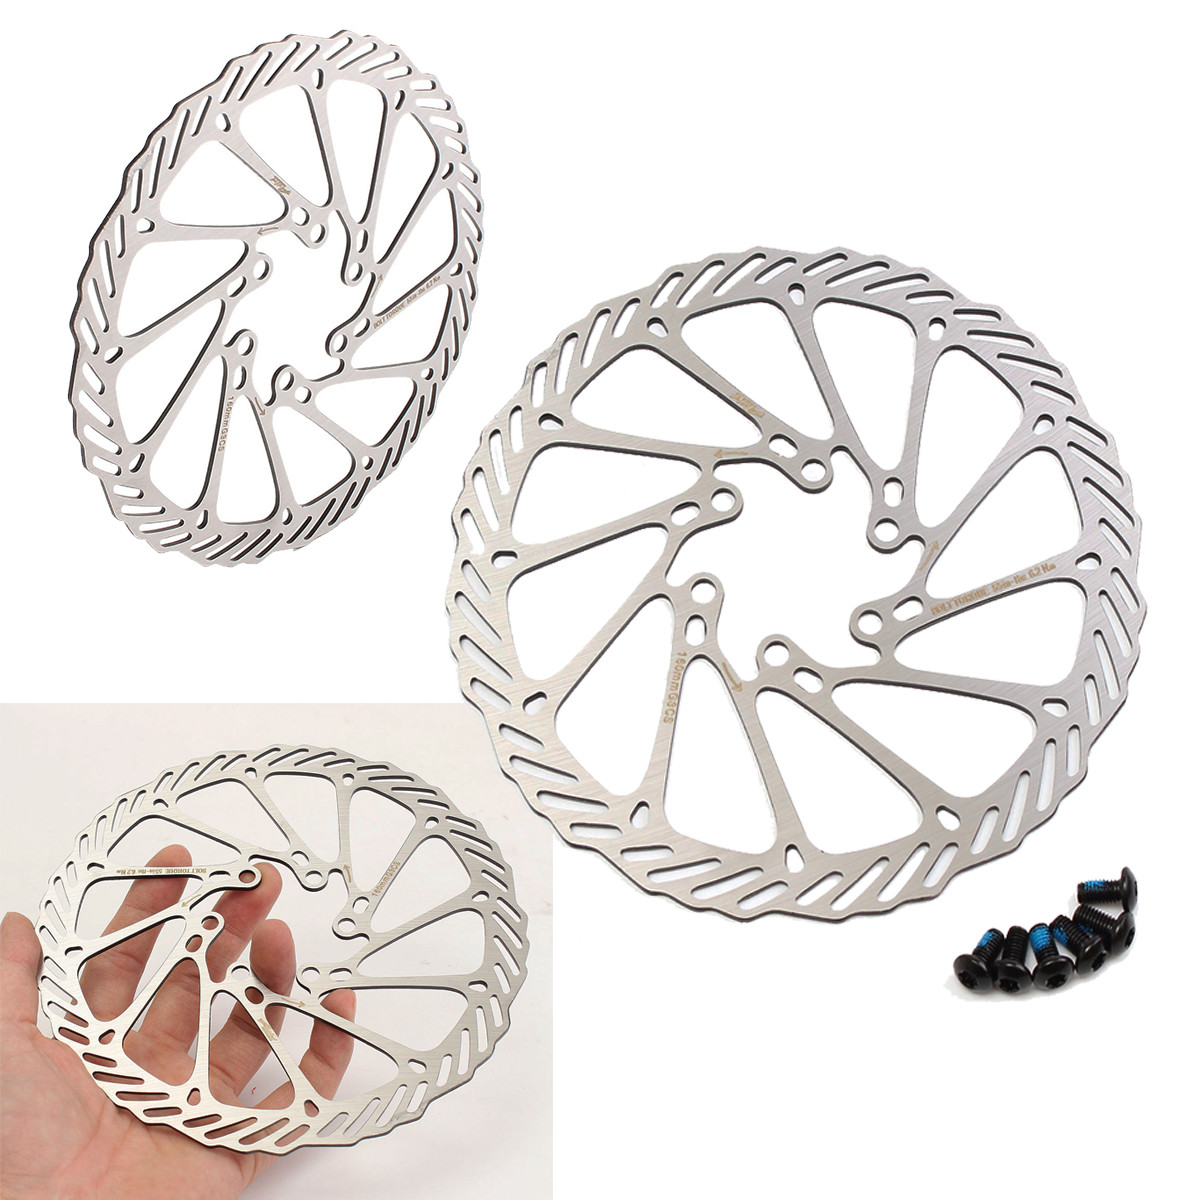 BIKIGHT Mechanical Disc Brake for Avid G3 CS Cleansweep Mountain Bicycle Rotor 160mm